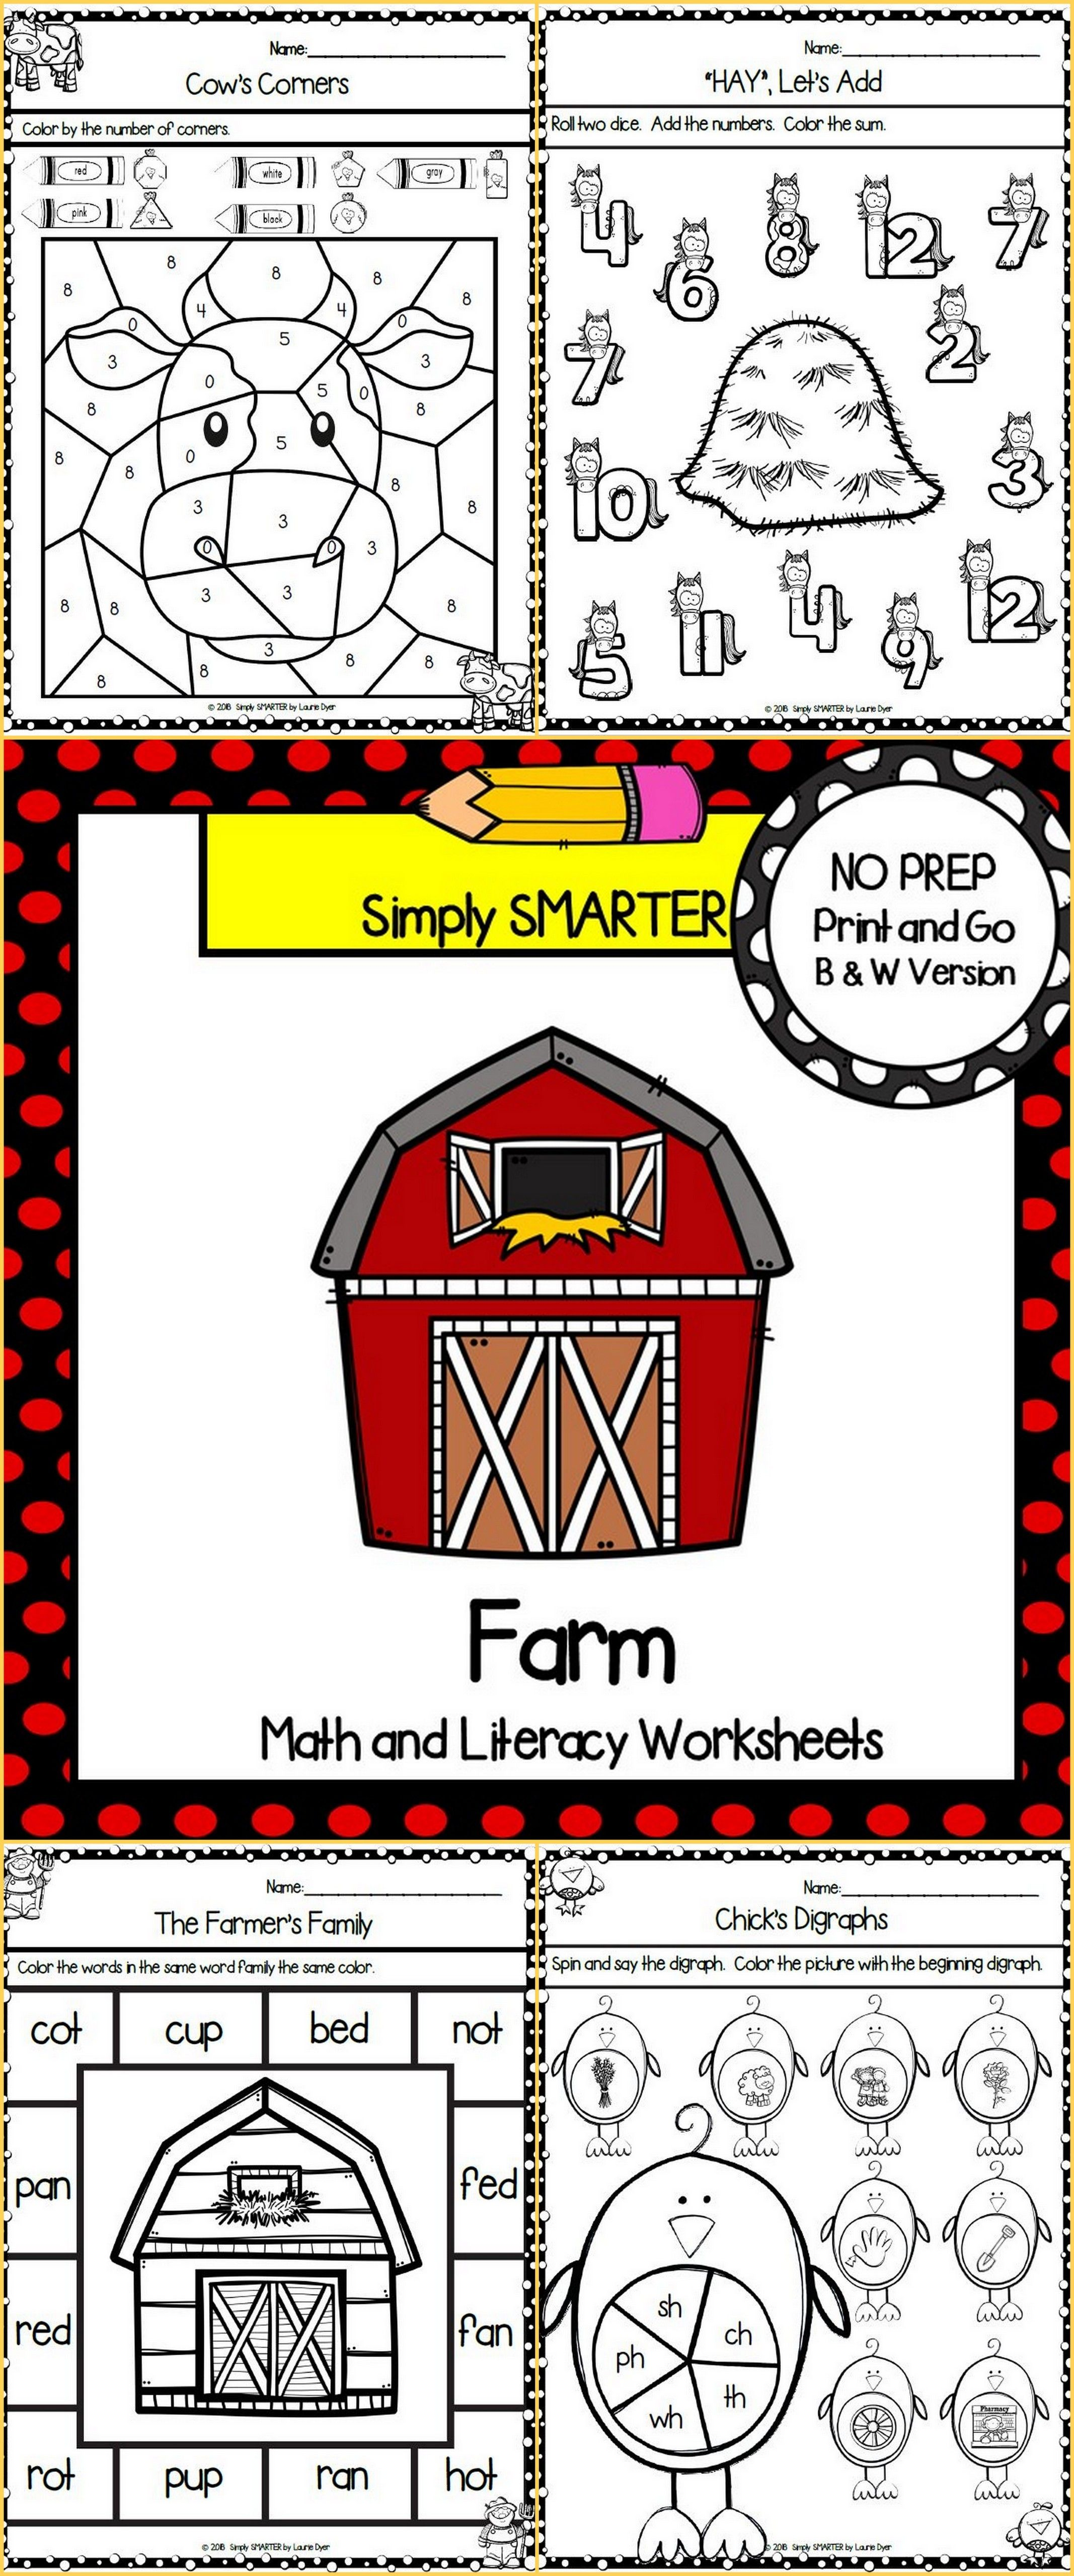 Are You Looking For No Prep Math And Literacy Activities